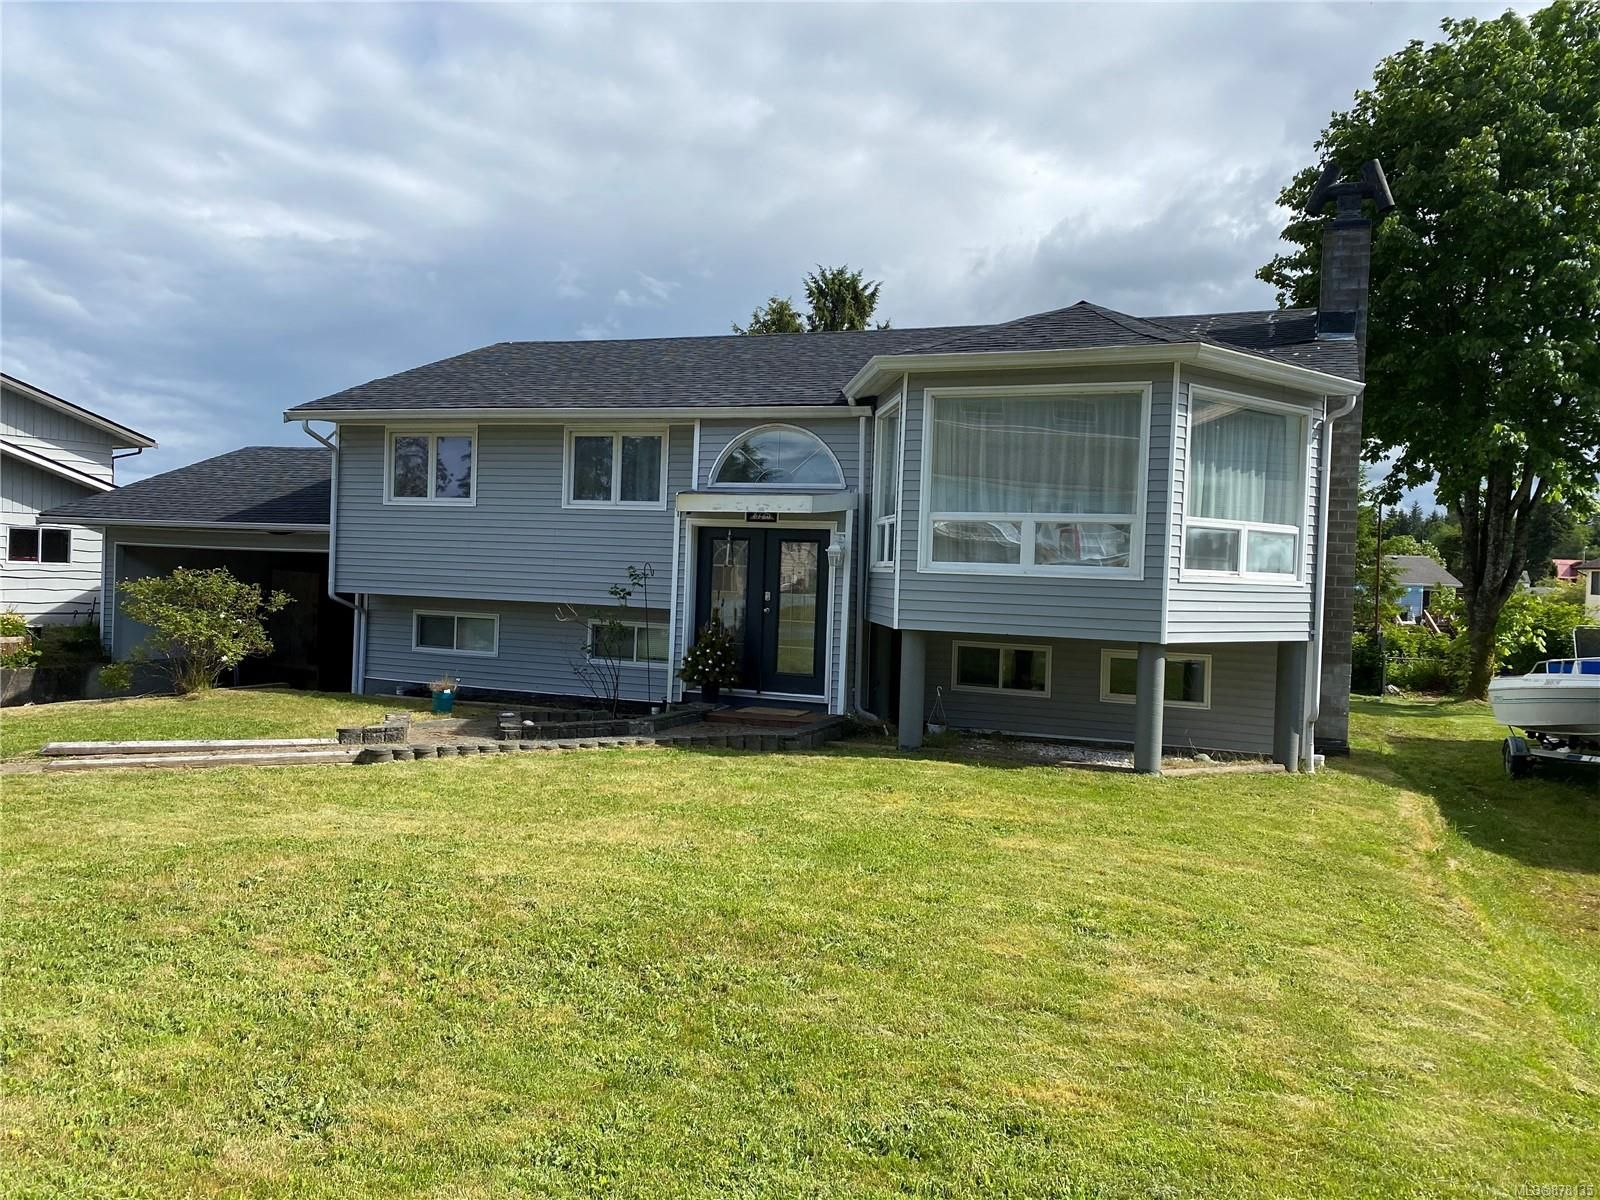 Main Photo: 8725 Seaview Dr in : NI Port Hardy House for sale (North Island)  : MLS®# 878135